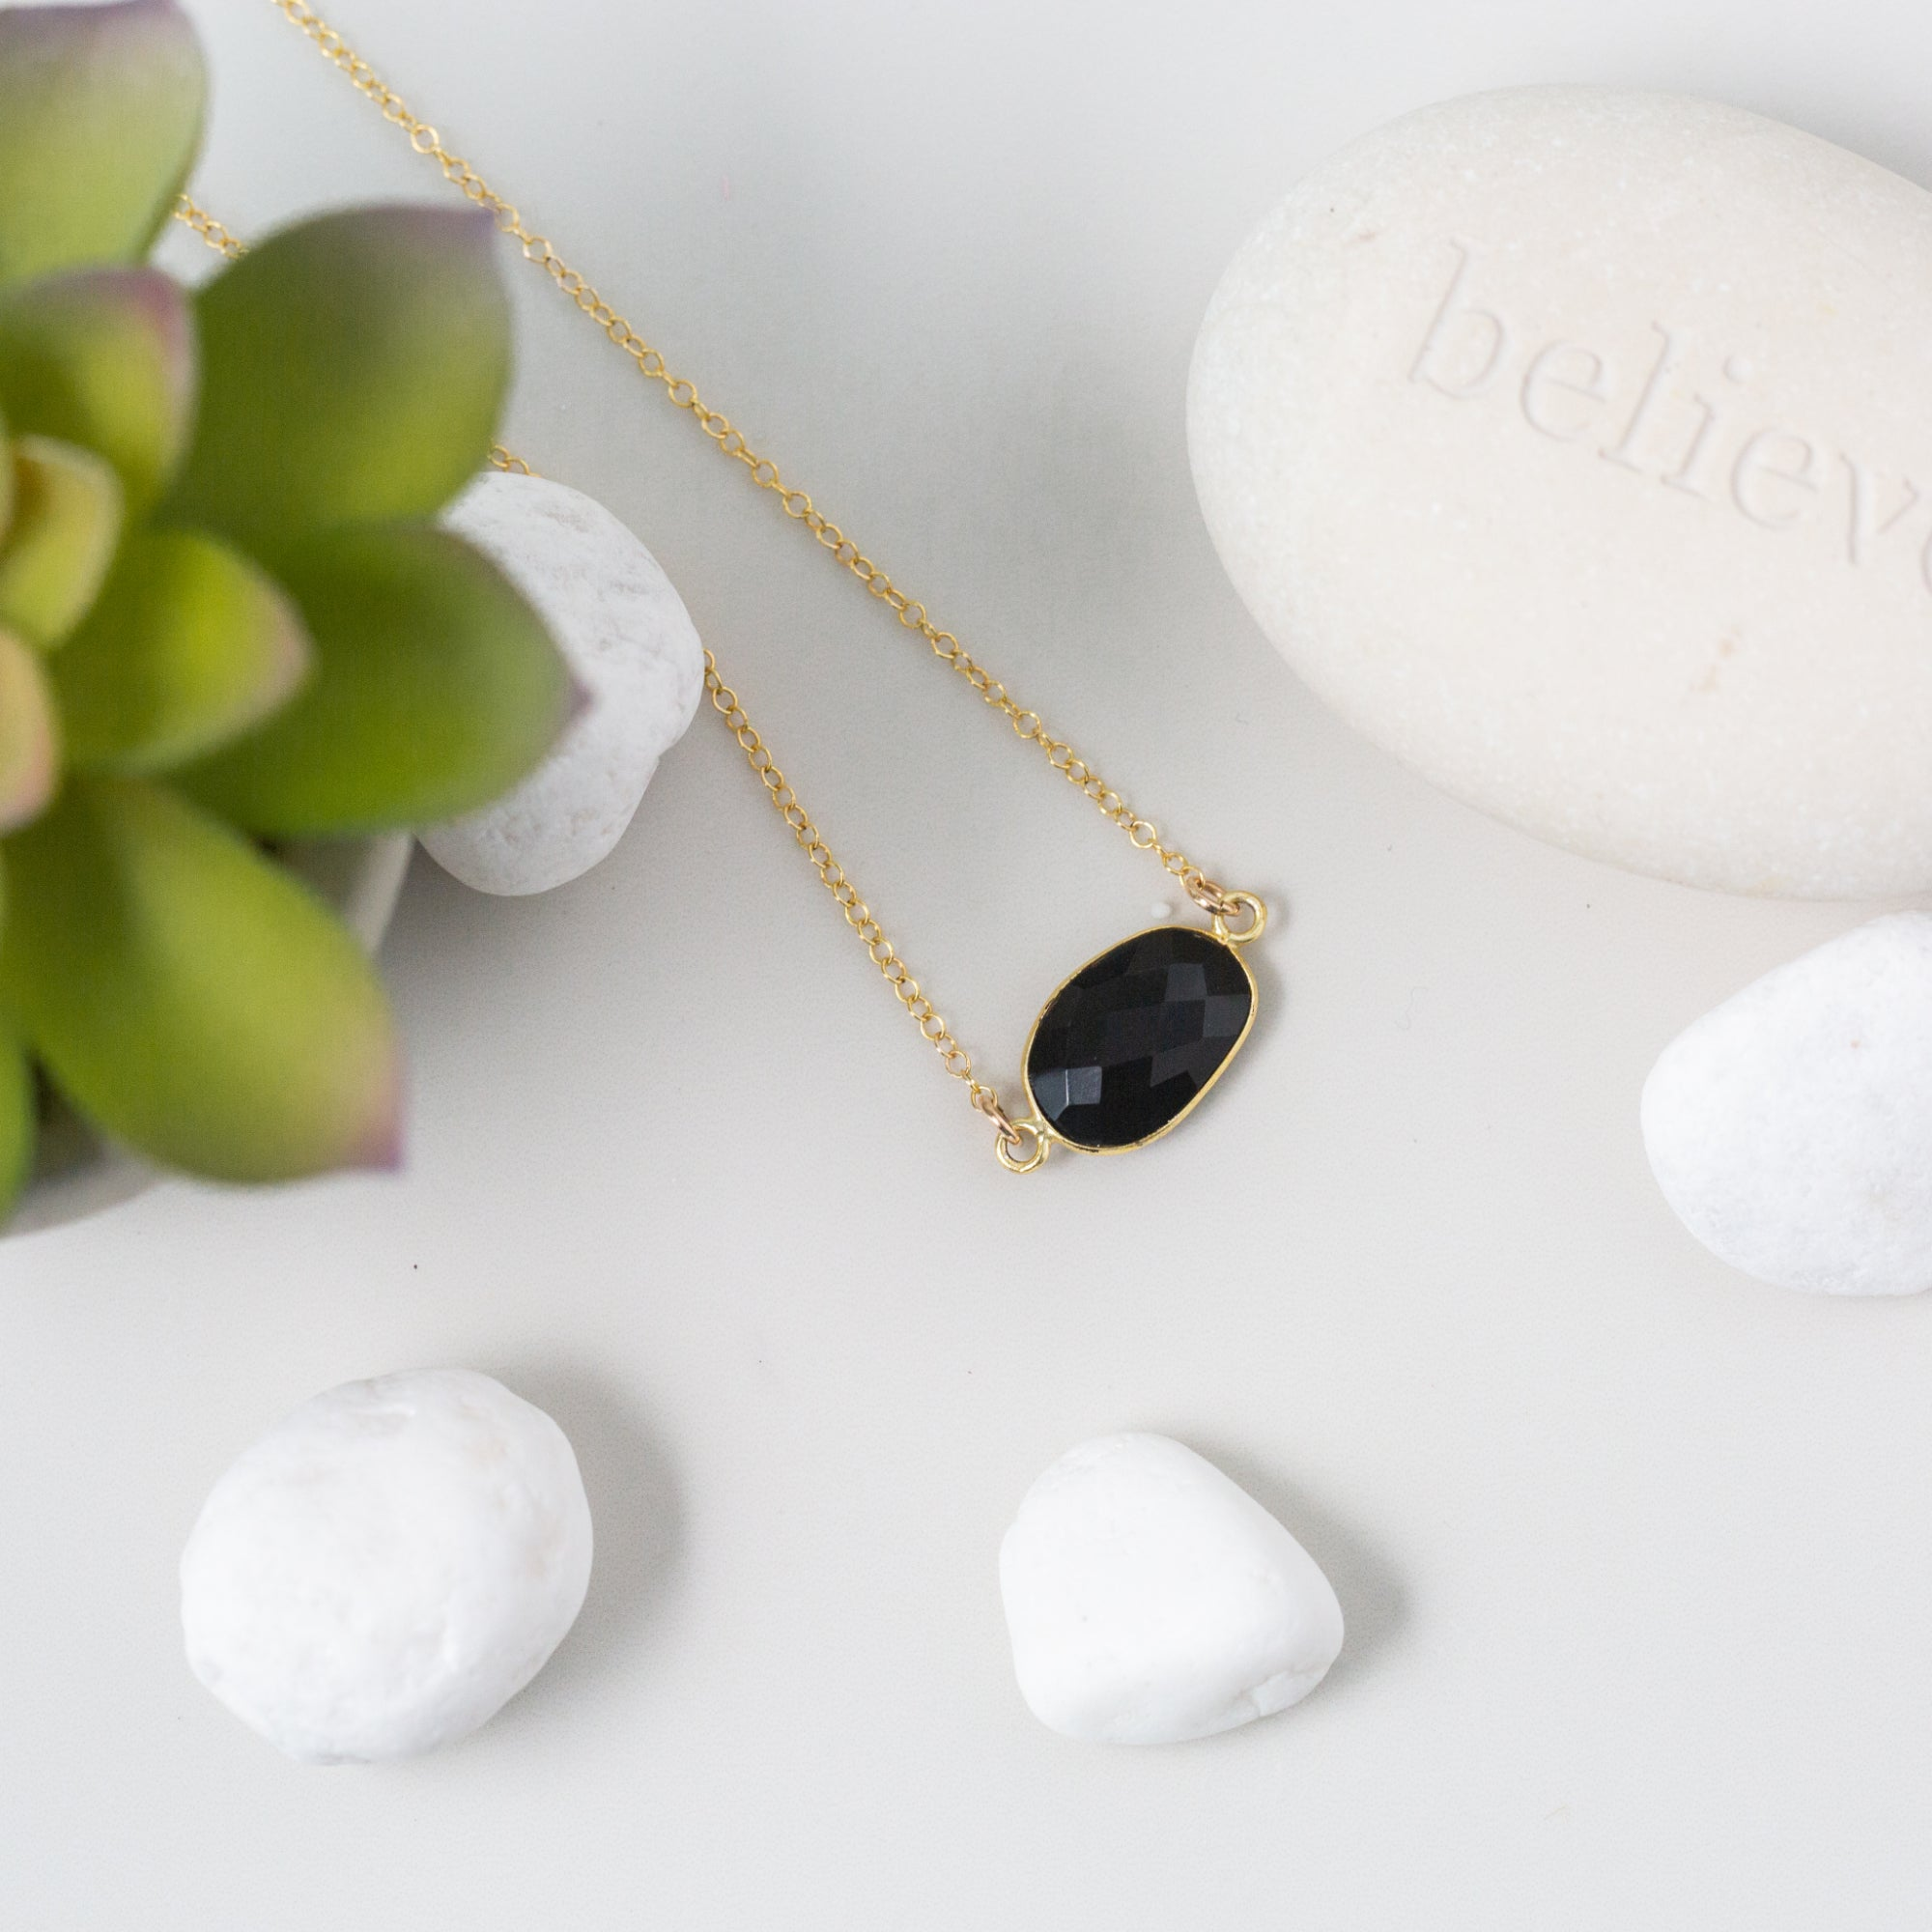 Oval-shaped Spinel and Gold Necklace 'I Am Badass' Flat Lay with Plant and White Stones Photo by Asha Blooms